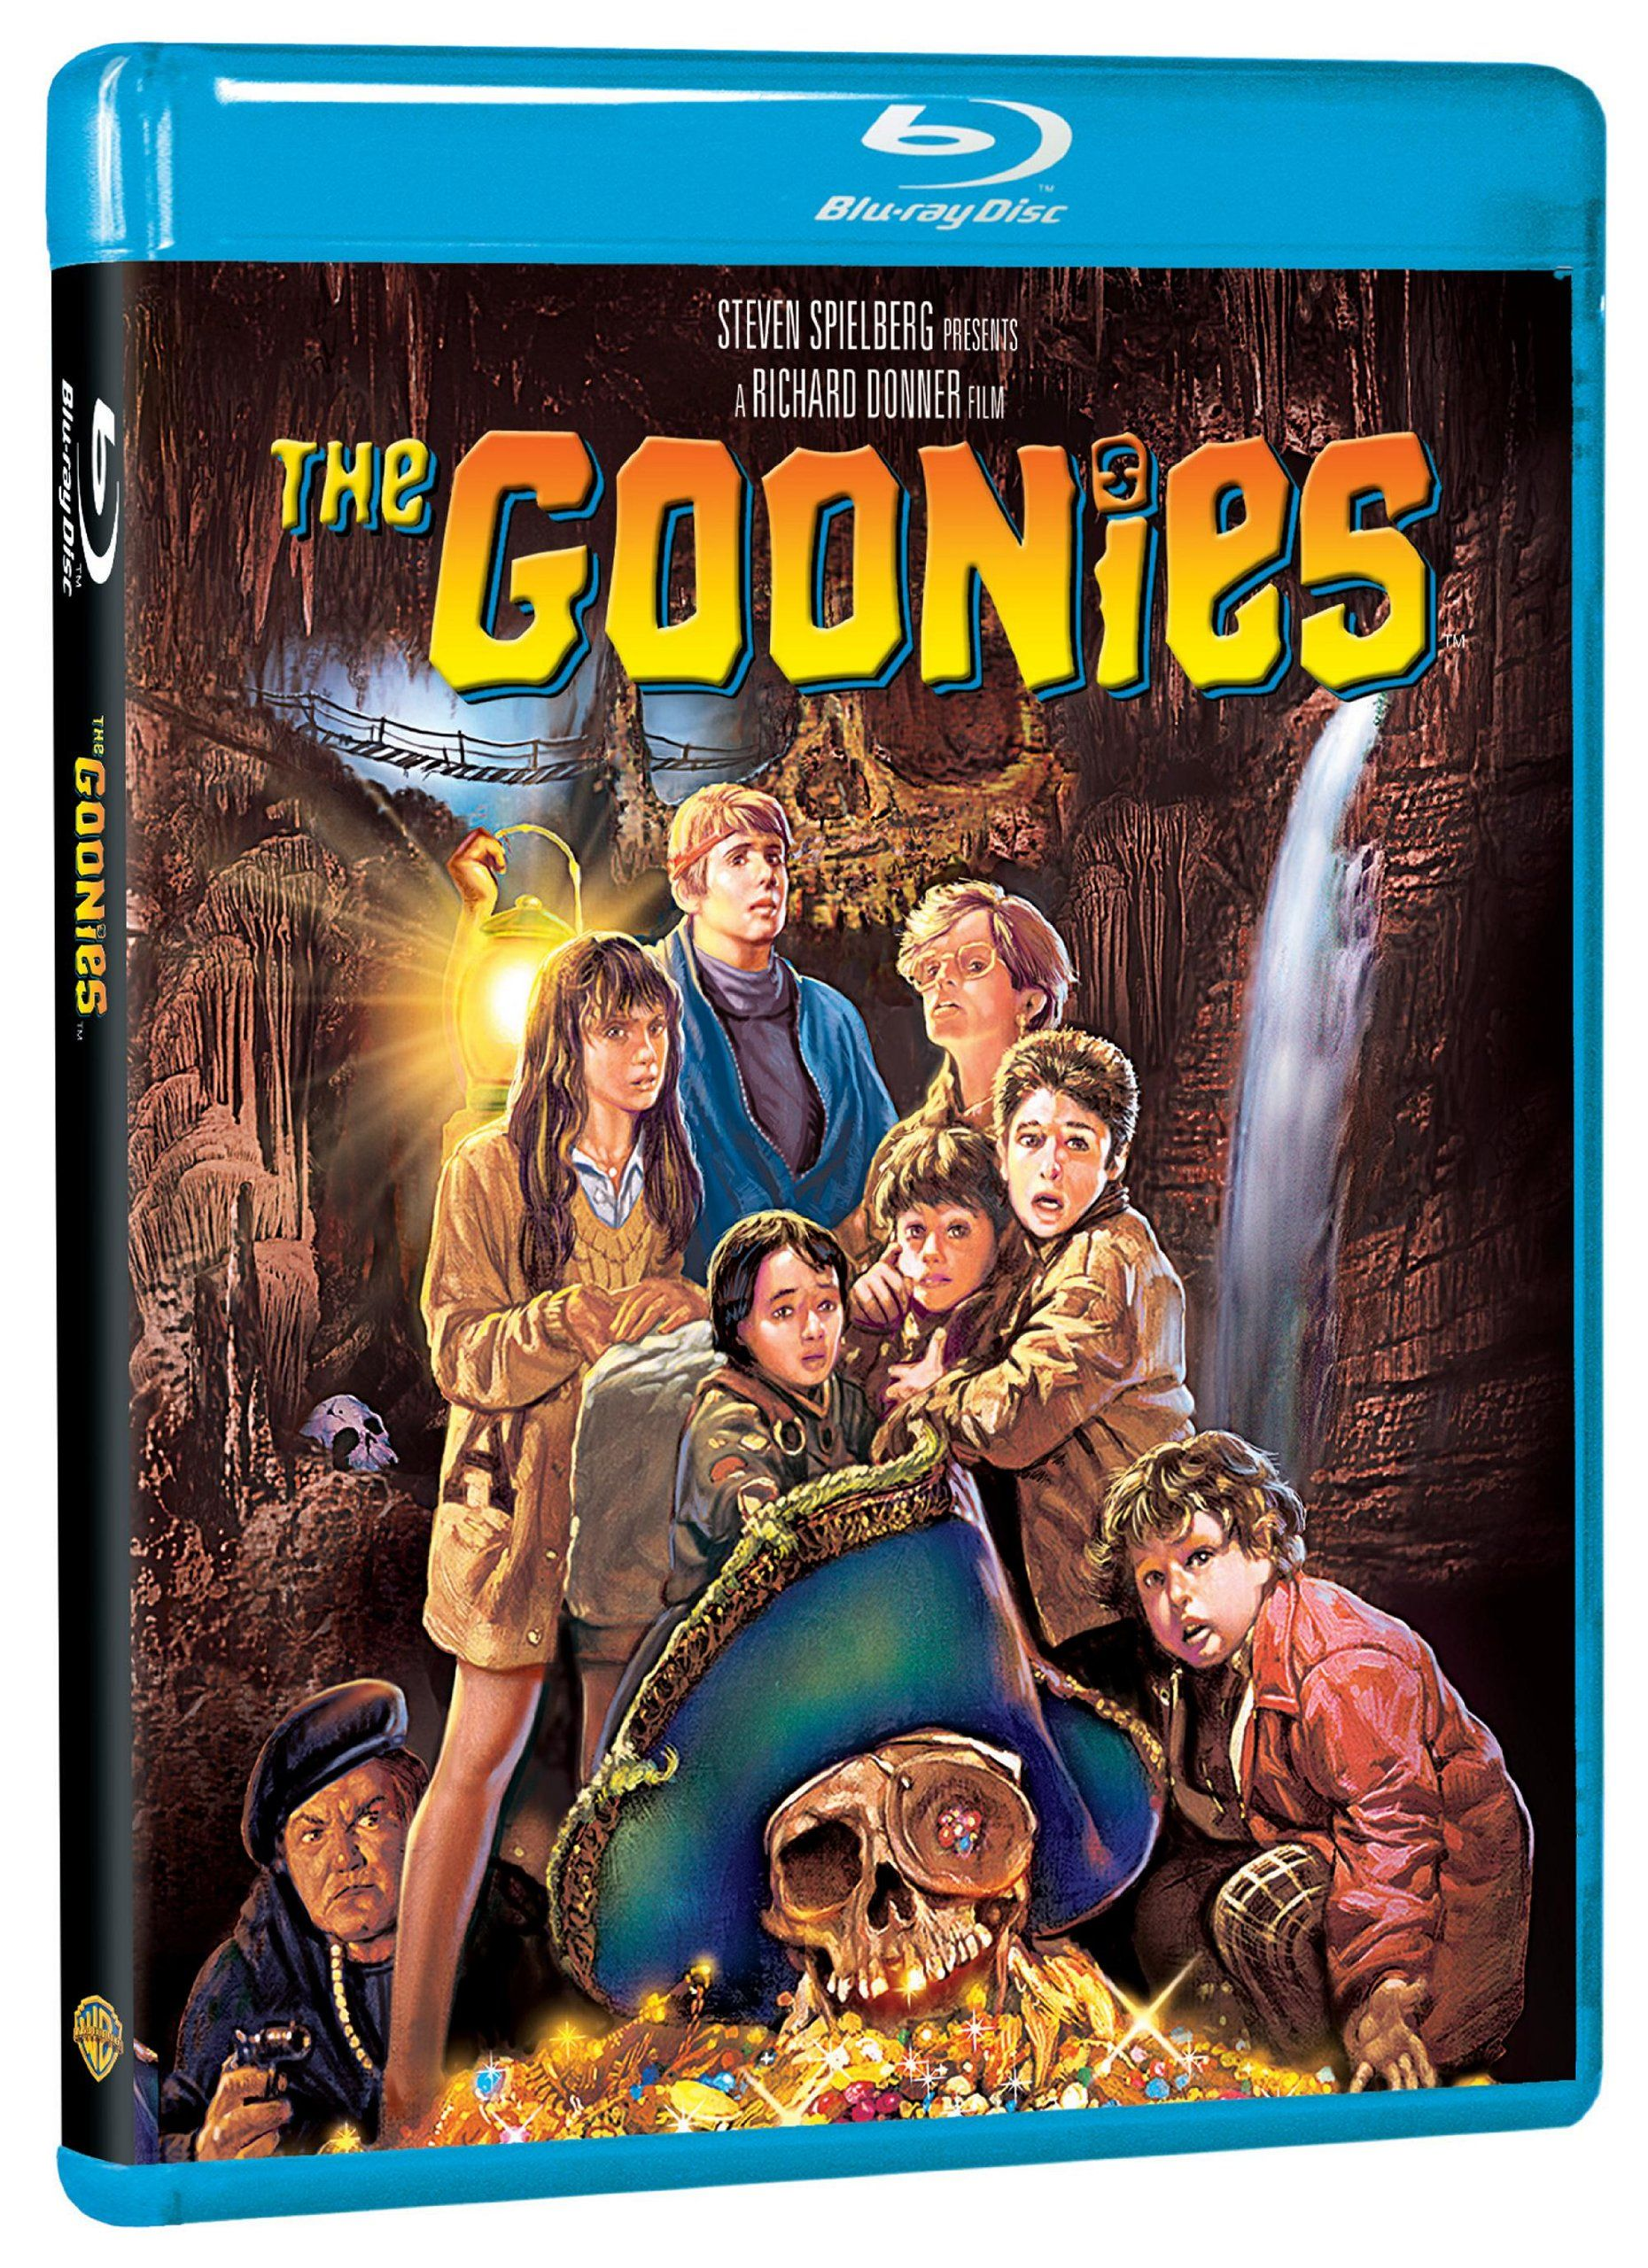 The Goonies [Bluray] (With images) Goonies movie